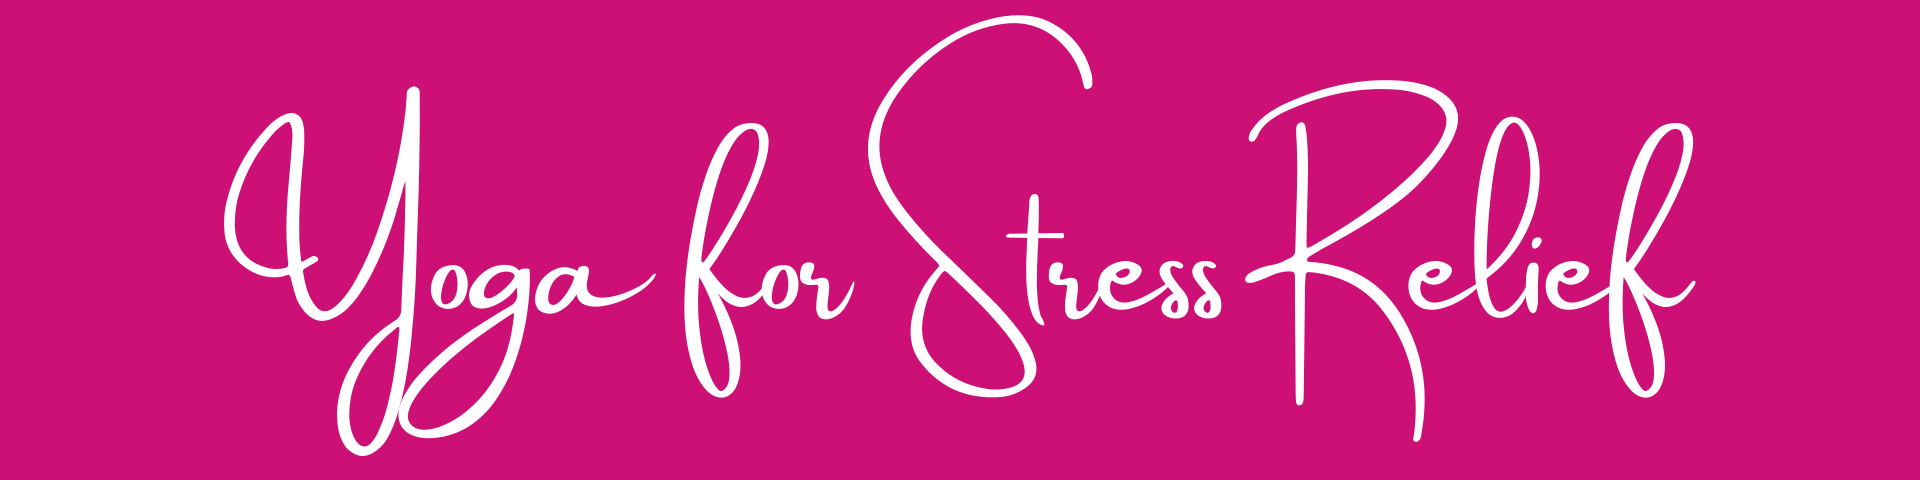 yoga for stress relief header (1)